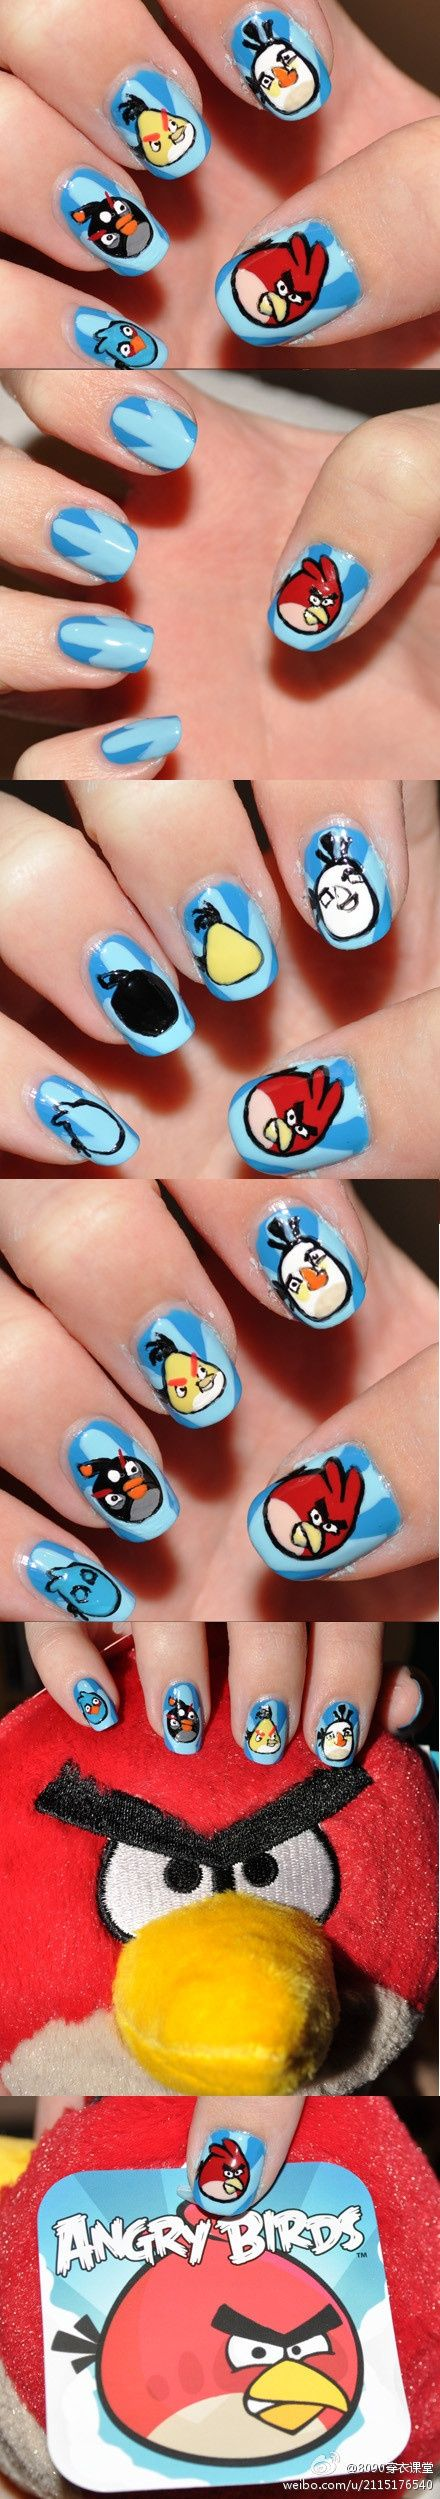 22 angry images birds nail art designs 2019